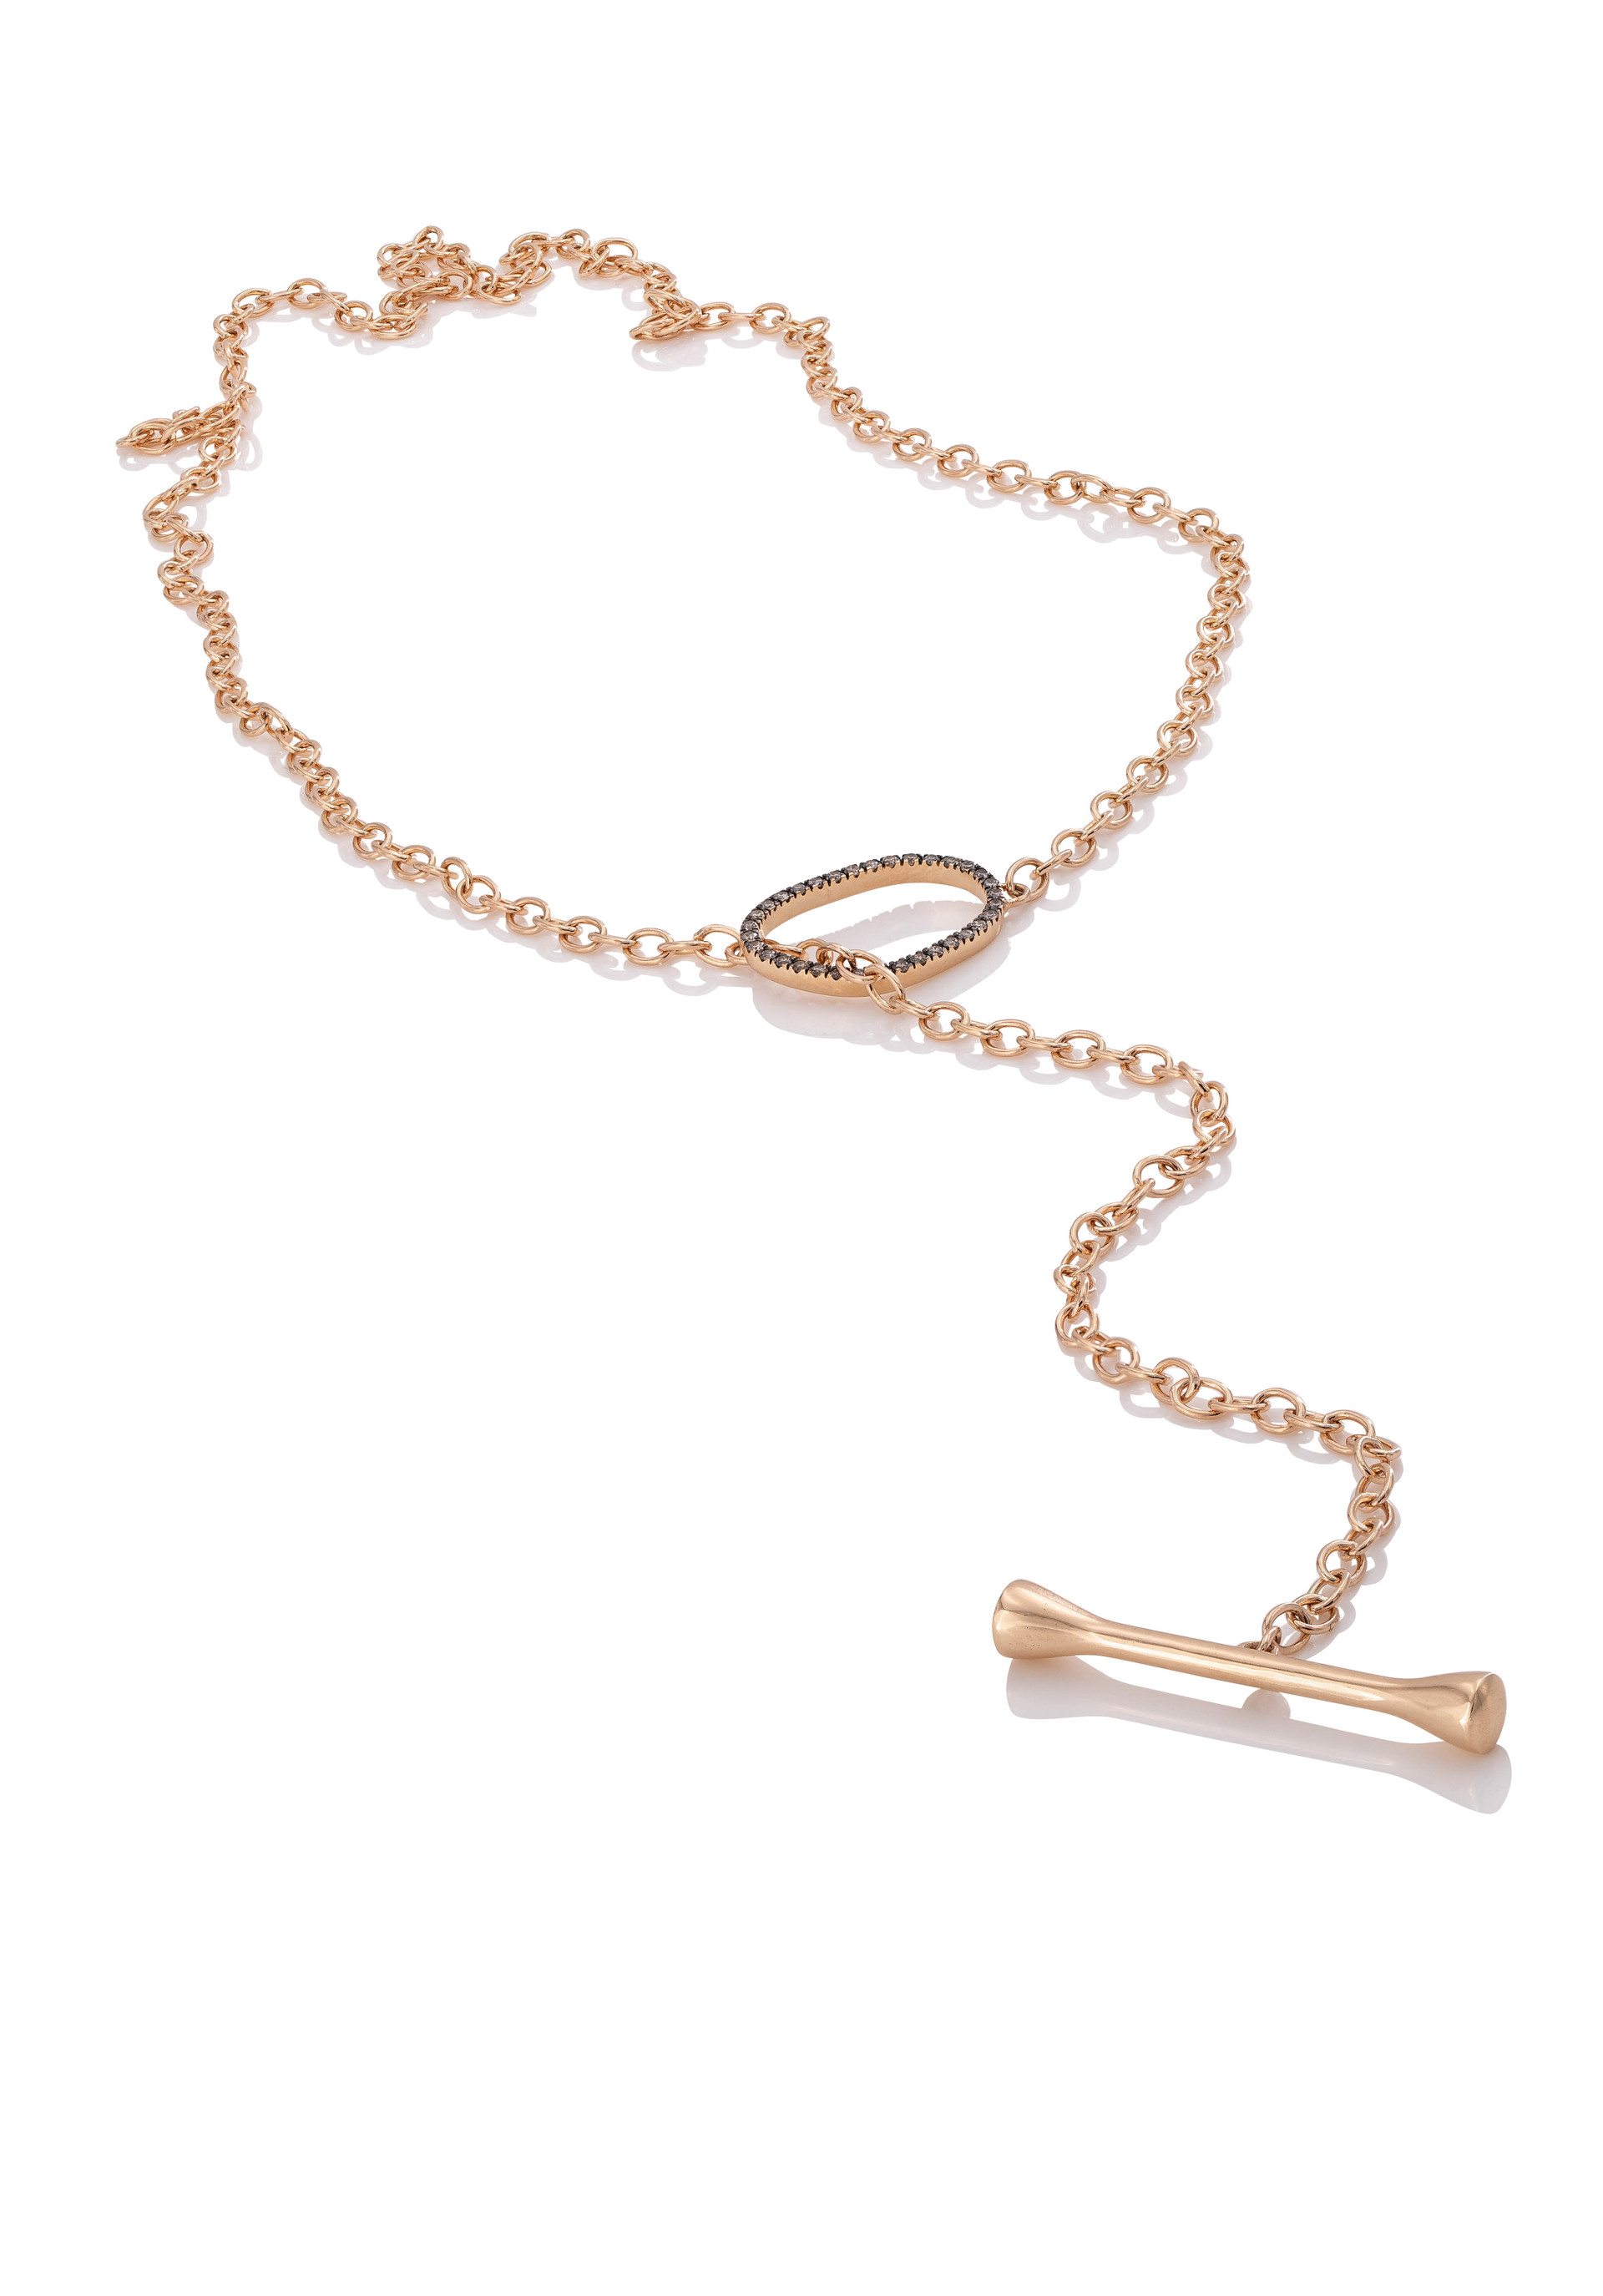 750 ROSÉGOLD KNEBEL-KETTE AIR 34 brillanten 0,26ct c2